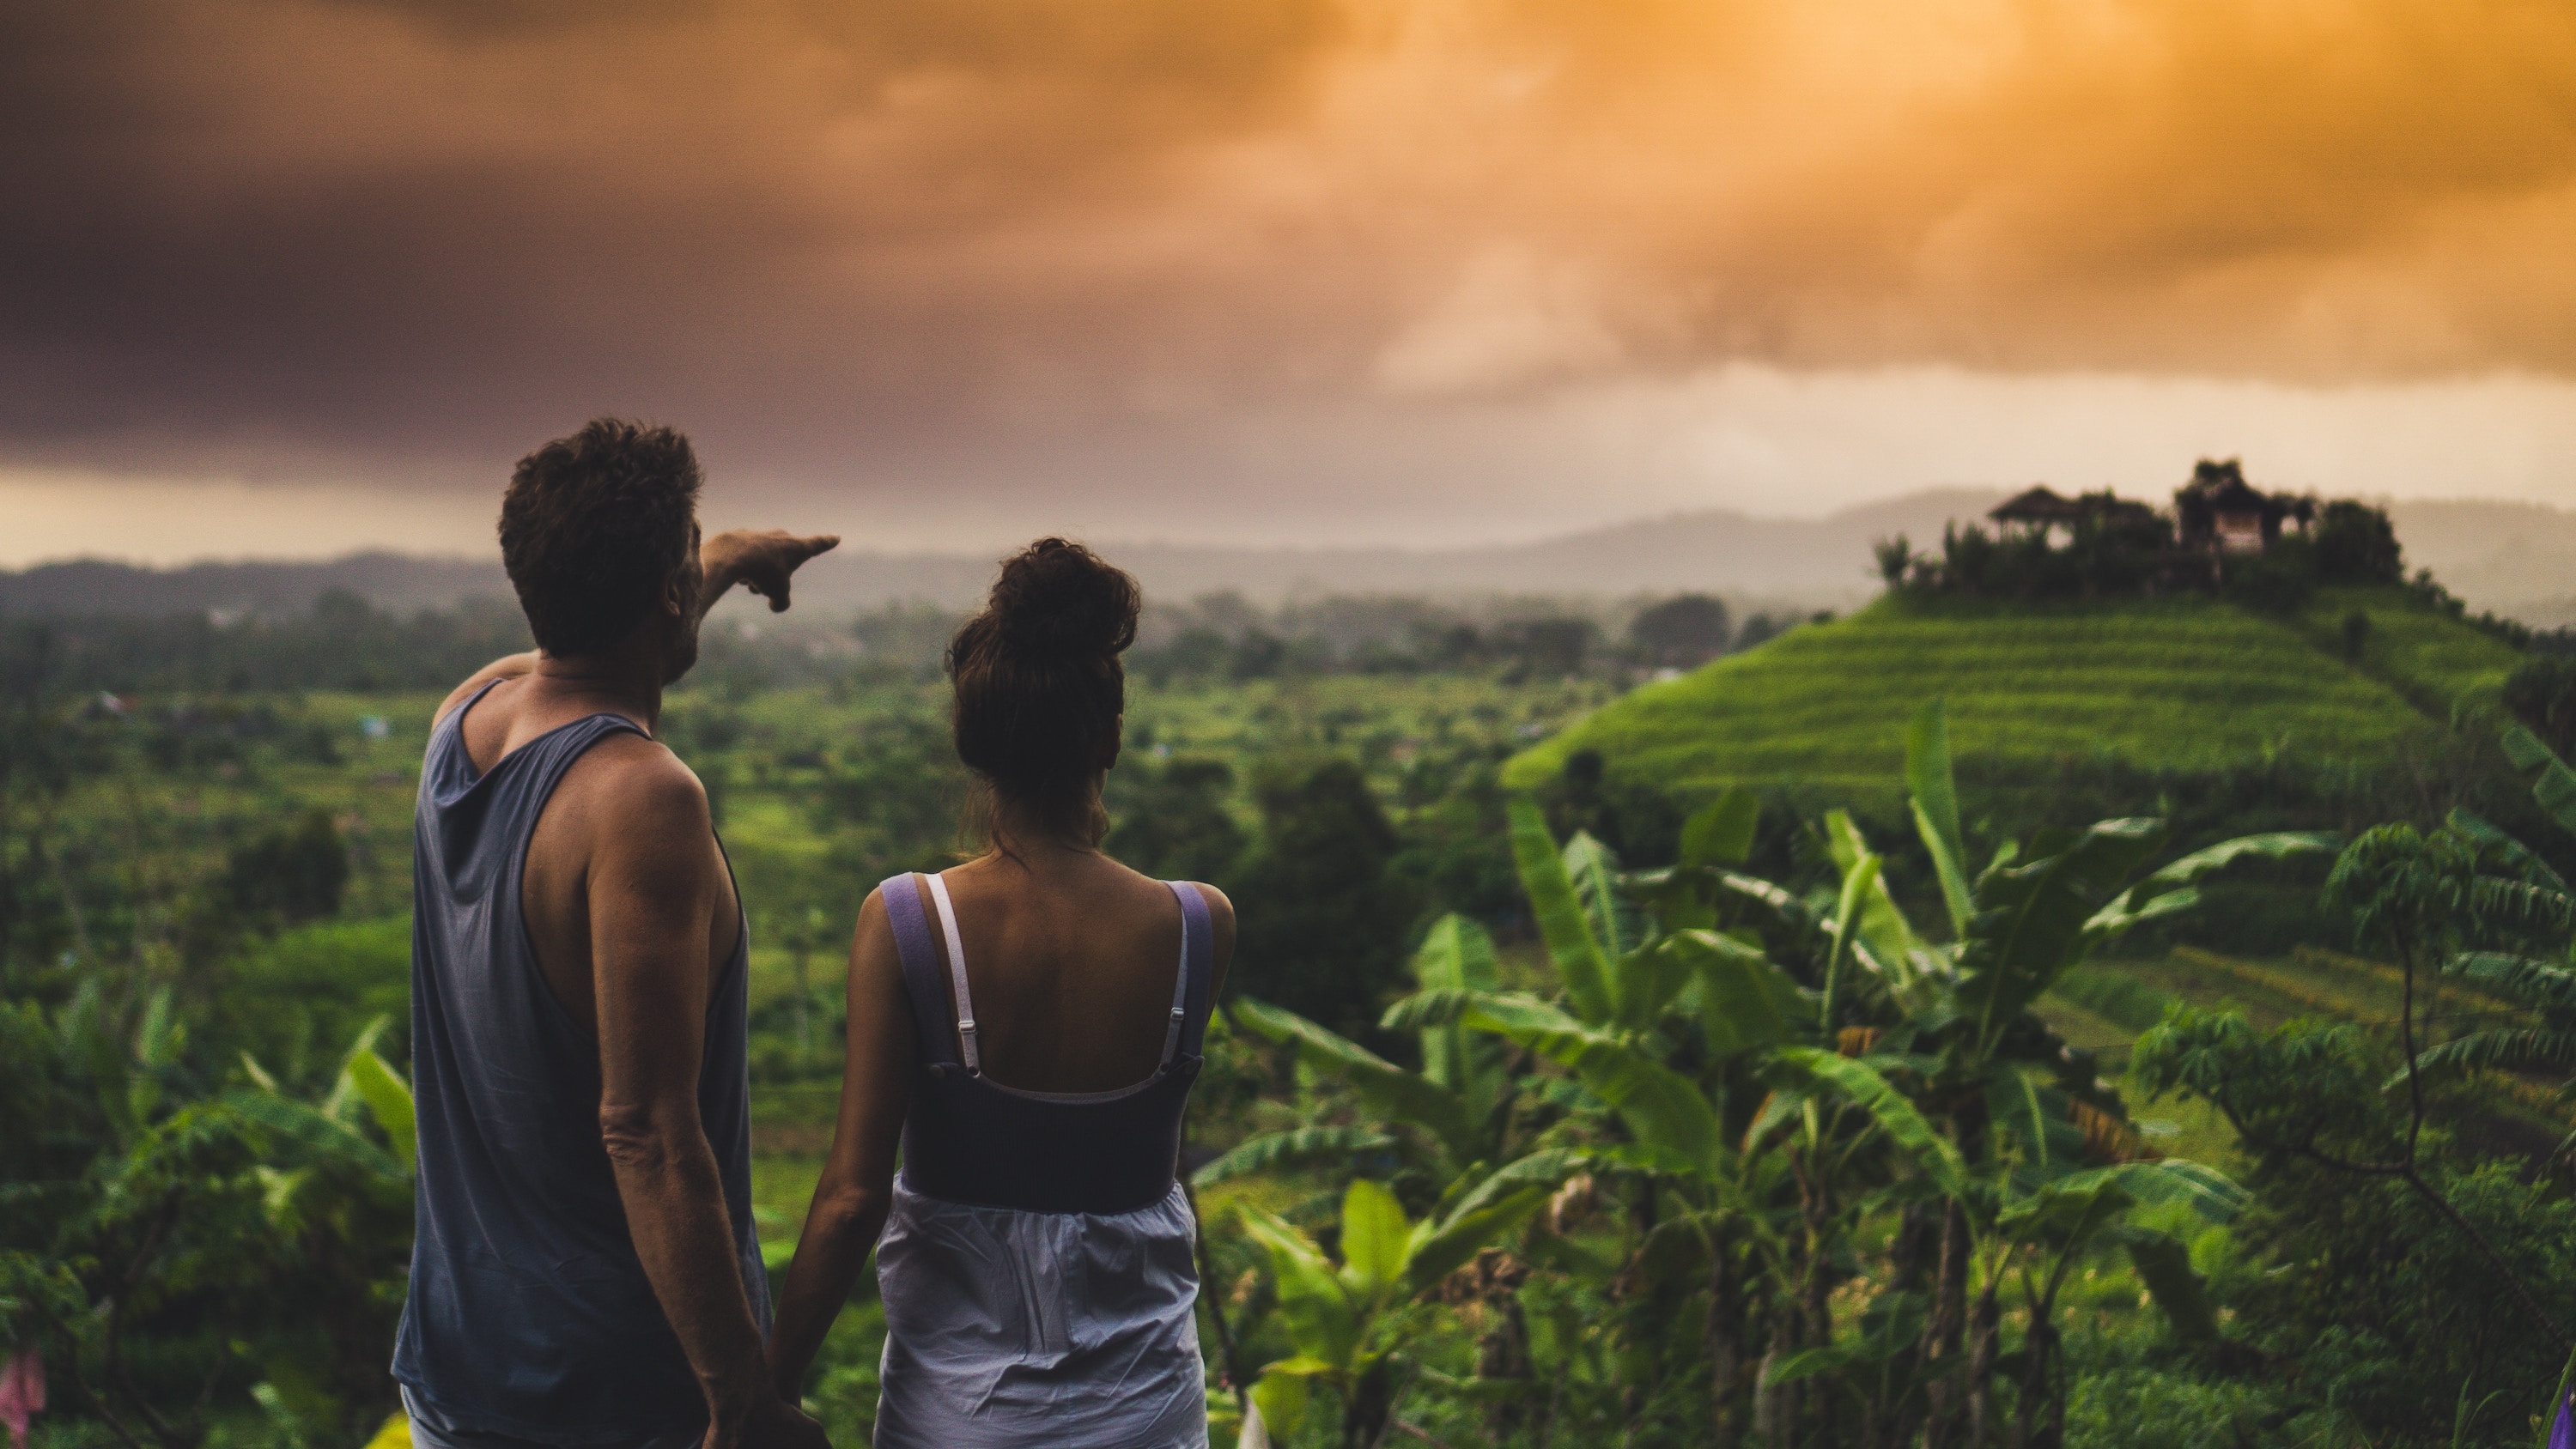 Couple looking across forest in Bali at sunset